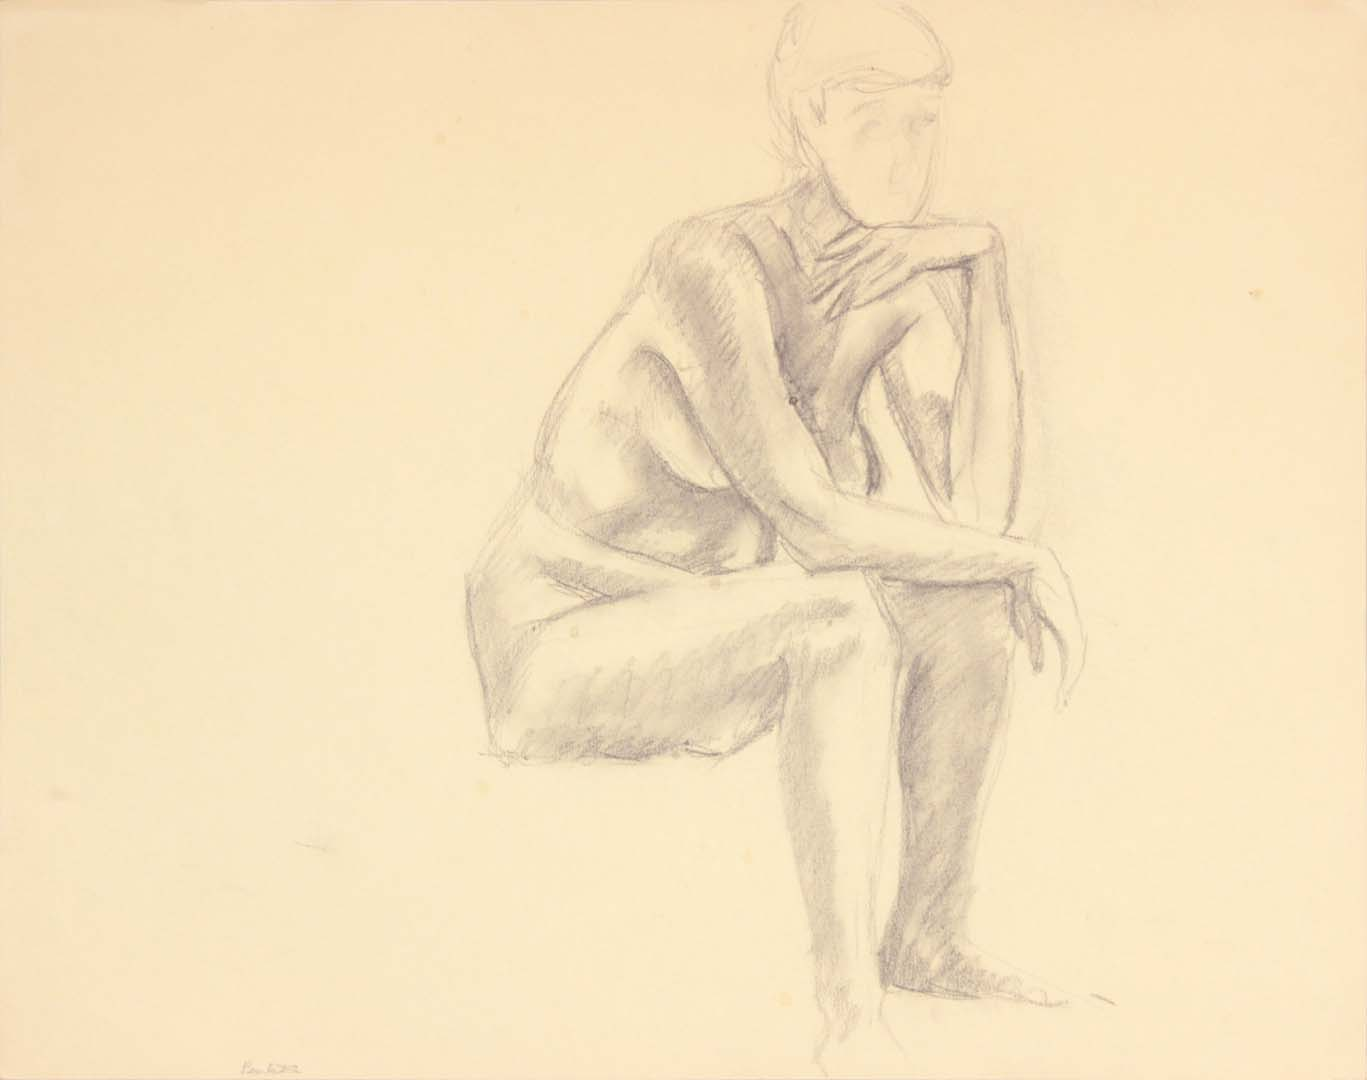 "Seated Female Leaning Forward Graphite 19"" x 24"""